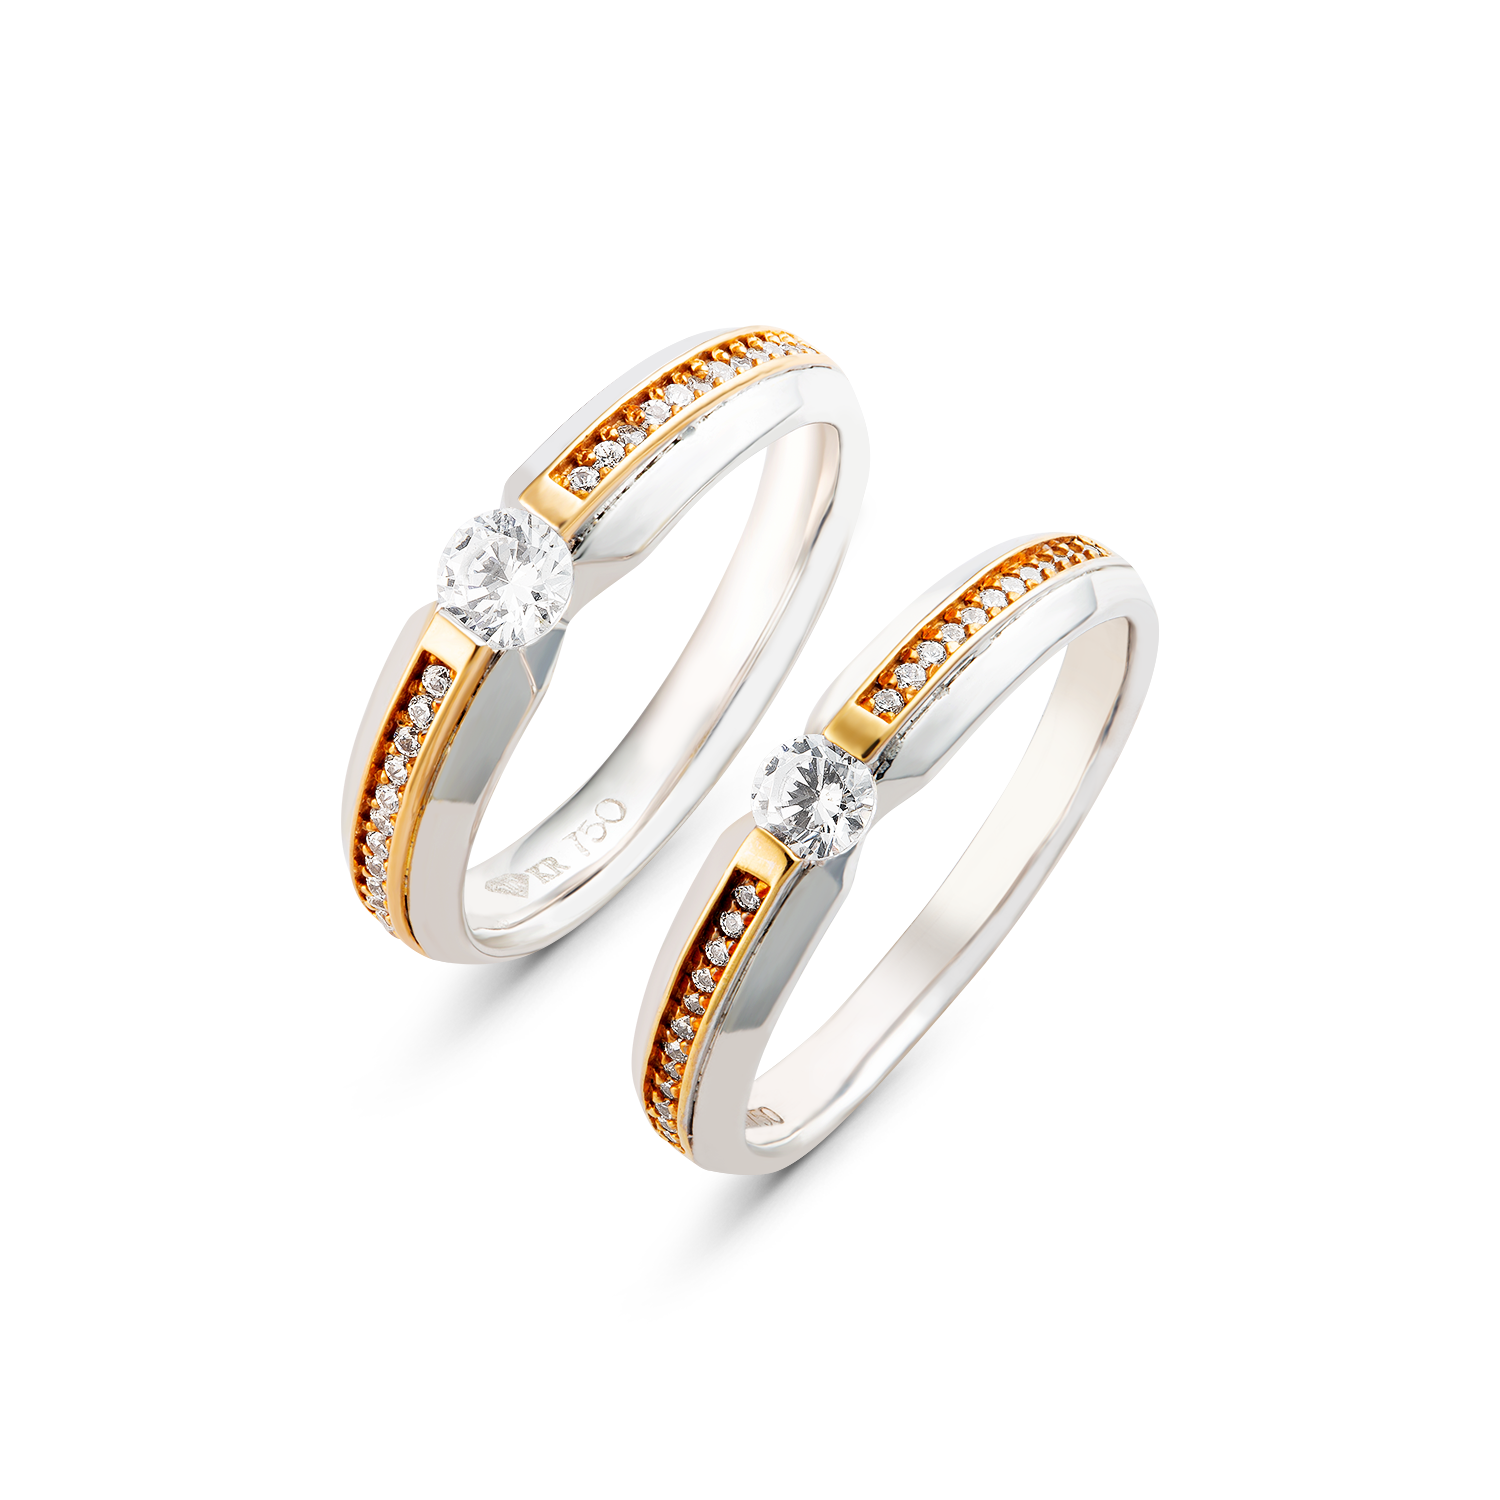 Huy Thanh Jewelry Marry